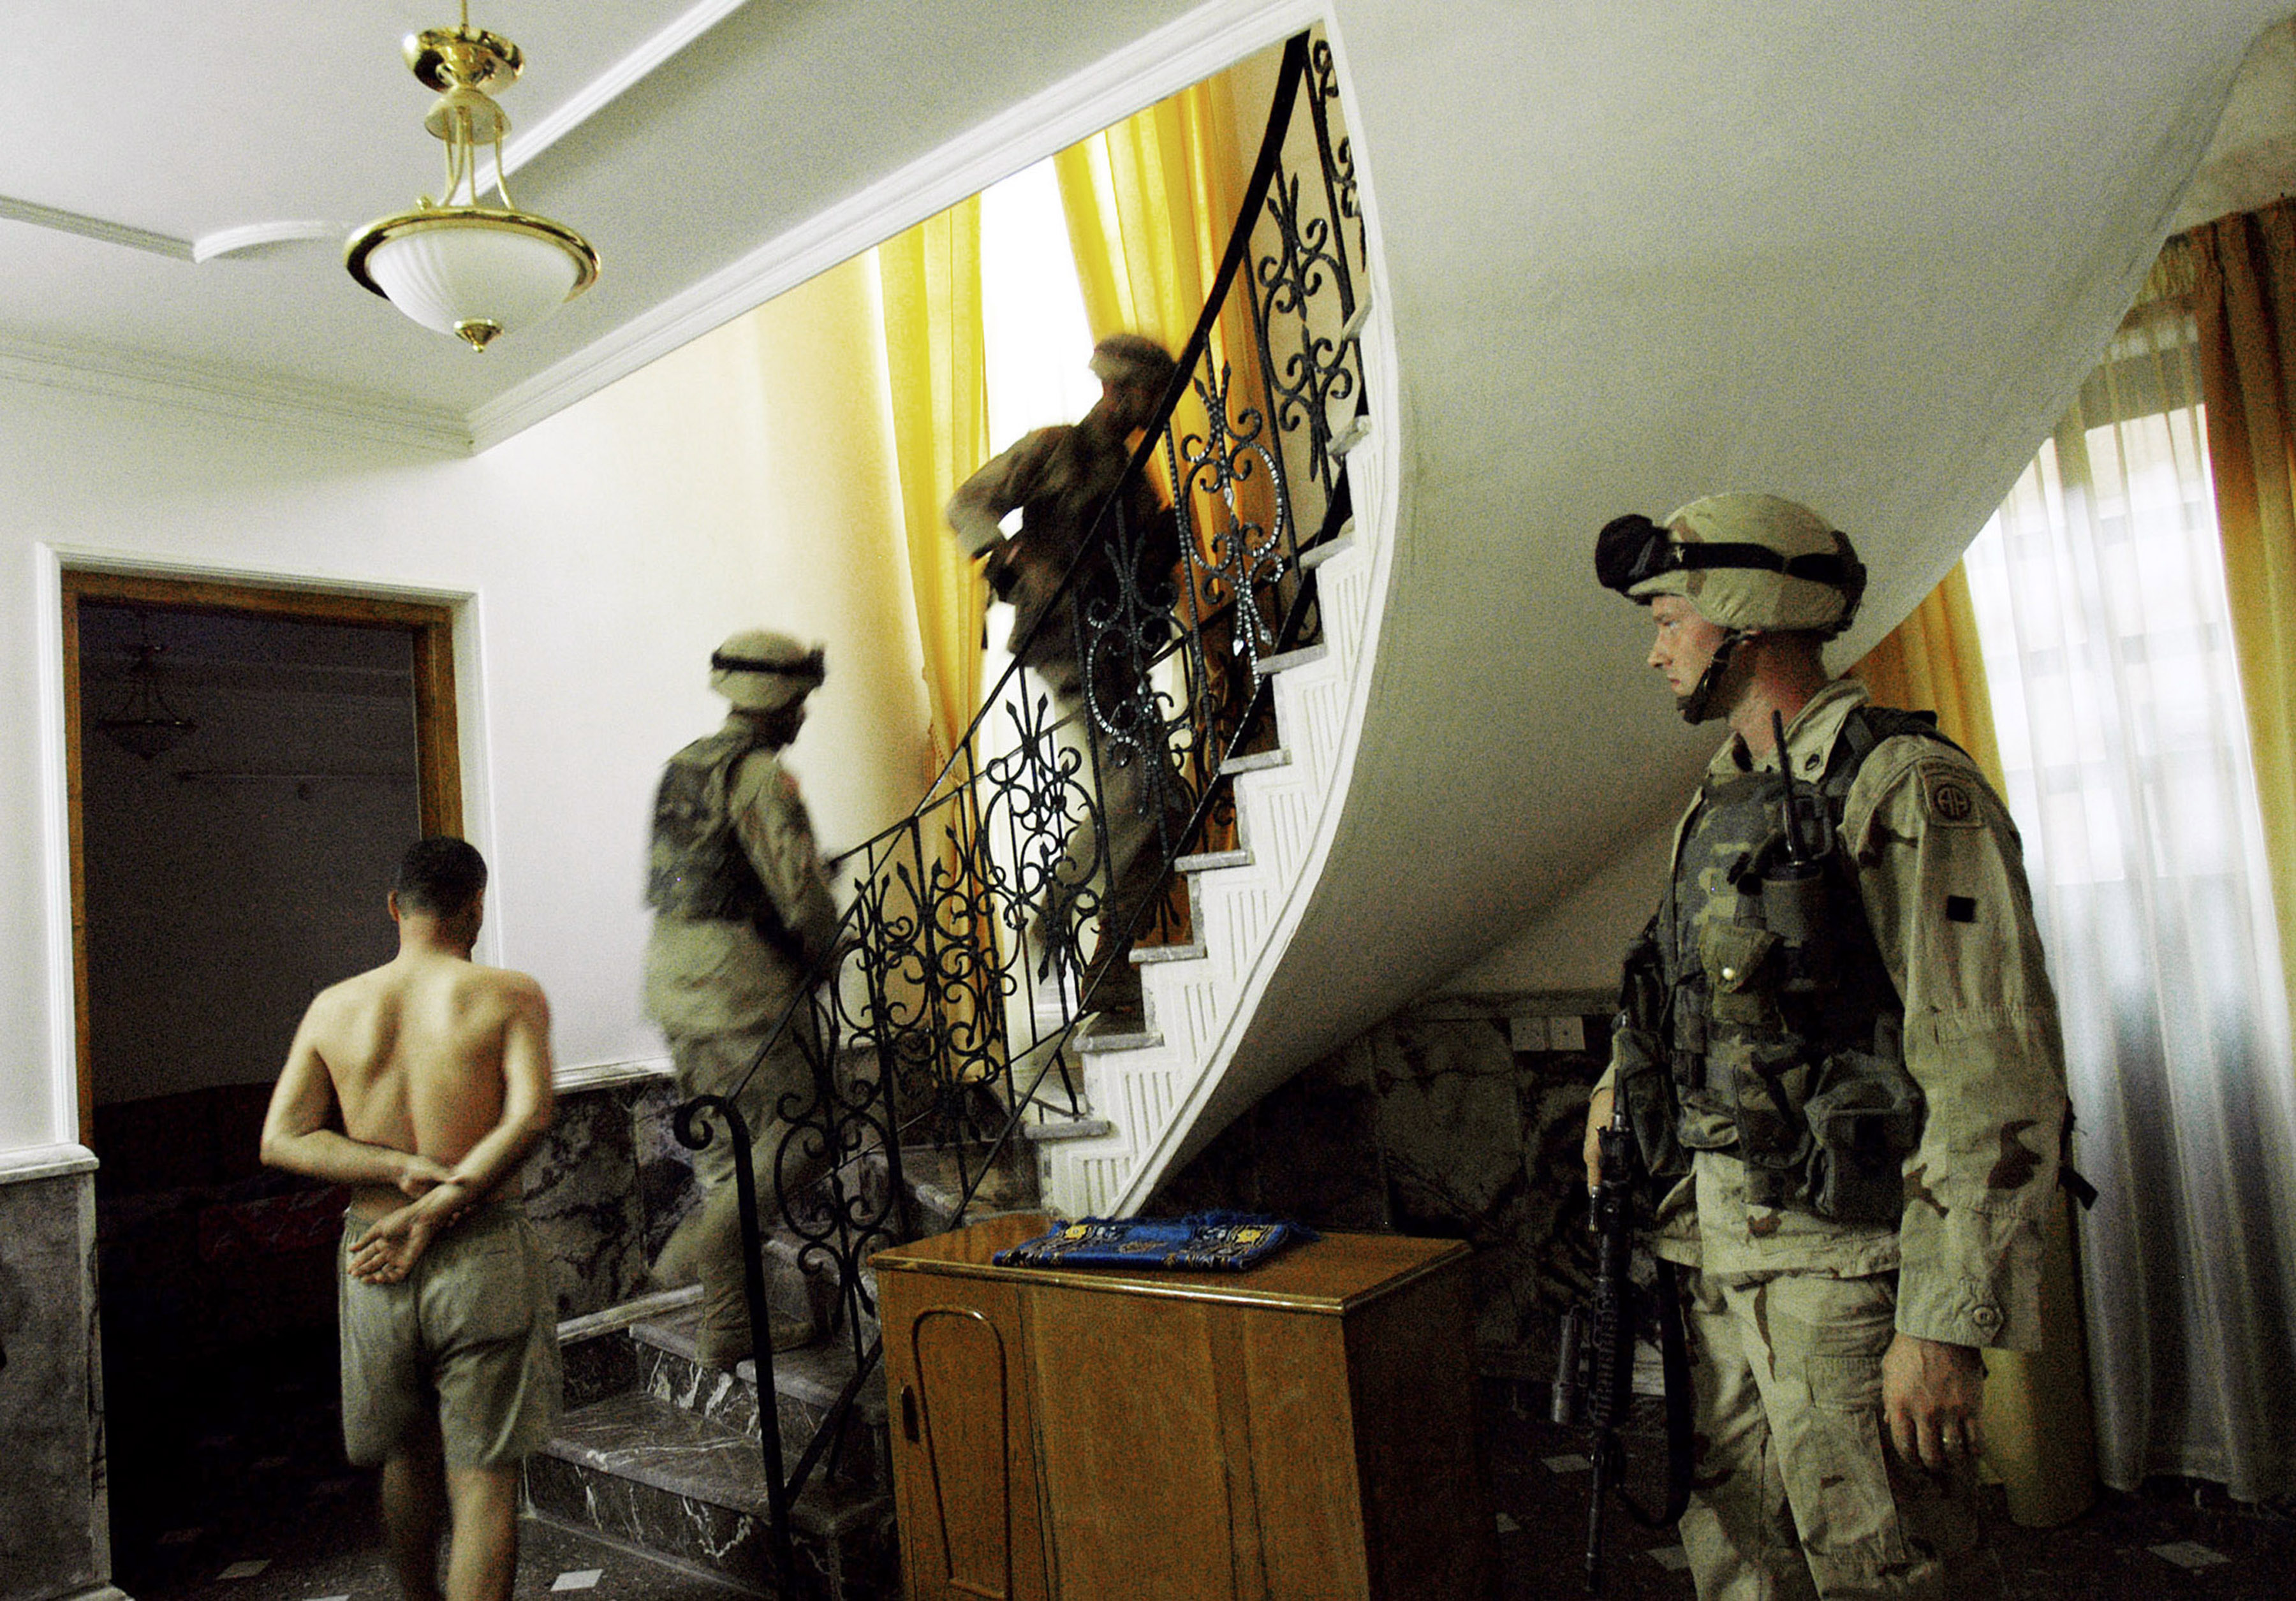 Soldiers from the 82 Airborne Division, 2nd Brigade, walk through a house in the Aldora section of Baghdad during an early morning  house to house search for weapons in Baghdad City, Iraq, June 22, 2003.  In an effort to reduce crime throughout Baghdad, US Troops have implemented a one-weapon rule for Baghdad locals, whereby they are allowed one pistol or Kalashnikov either in their homes or offices, and no automatic weapons.